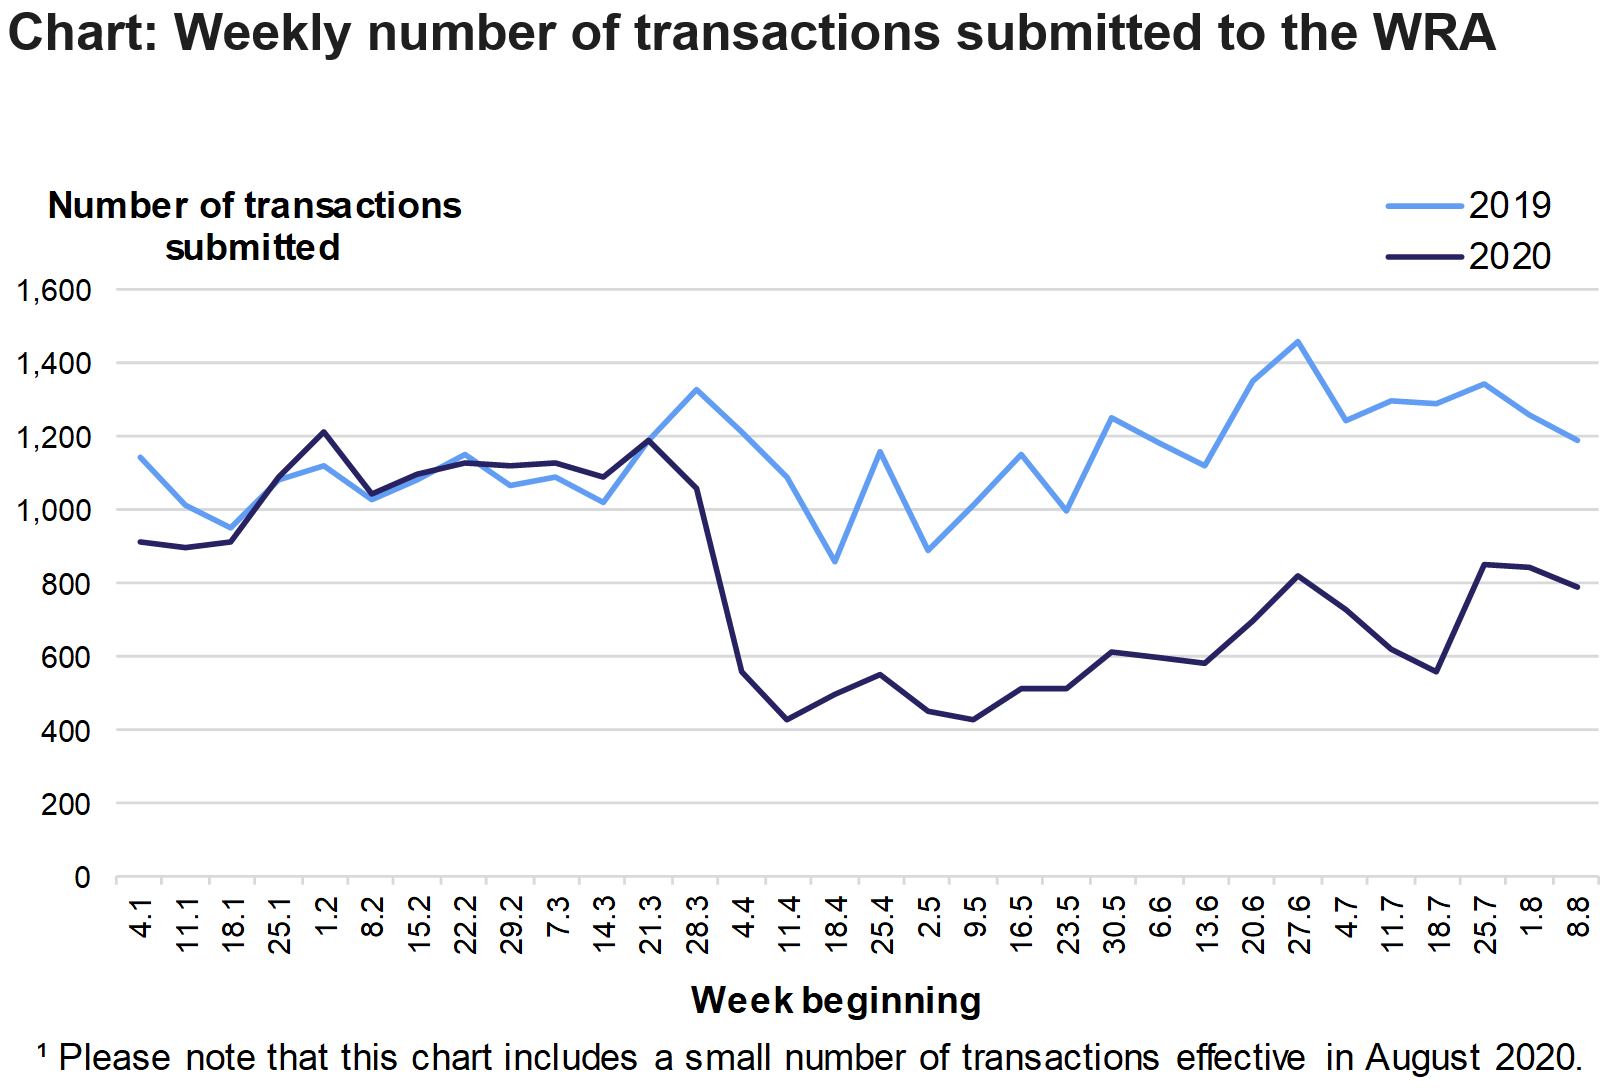 The chart shows the number of residential and non-residential transactions submitted to the WRA each week from January to August, in 2019 and 2020. Please note that this chart includes a small number of transactions effective in August 2020.